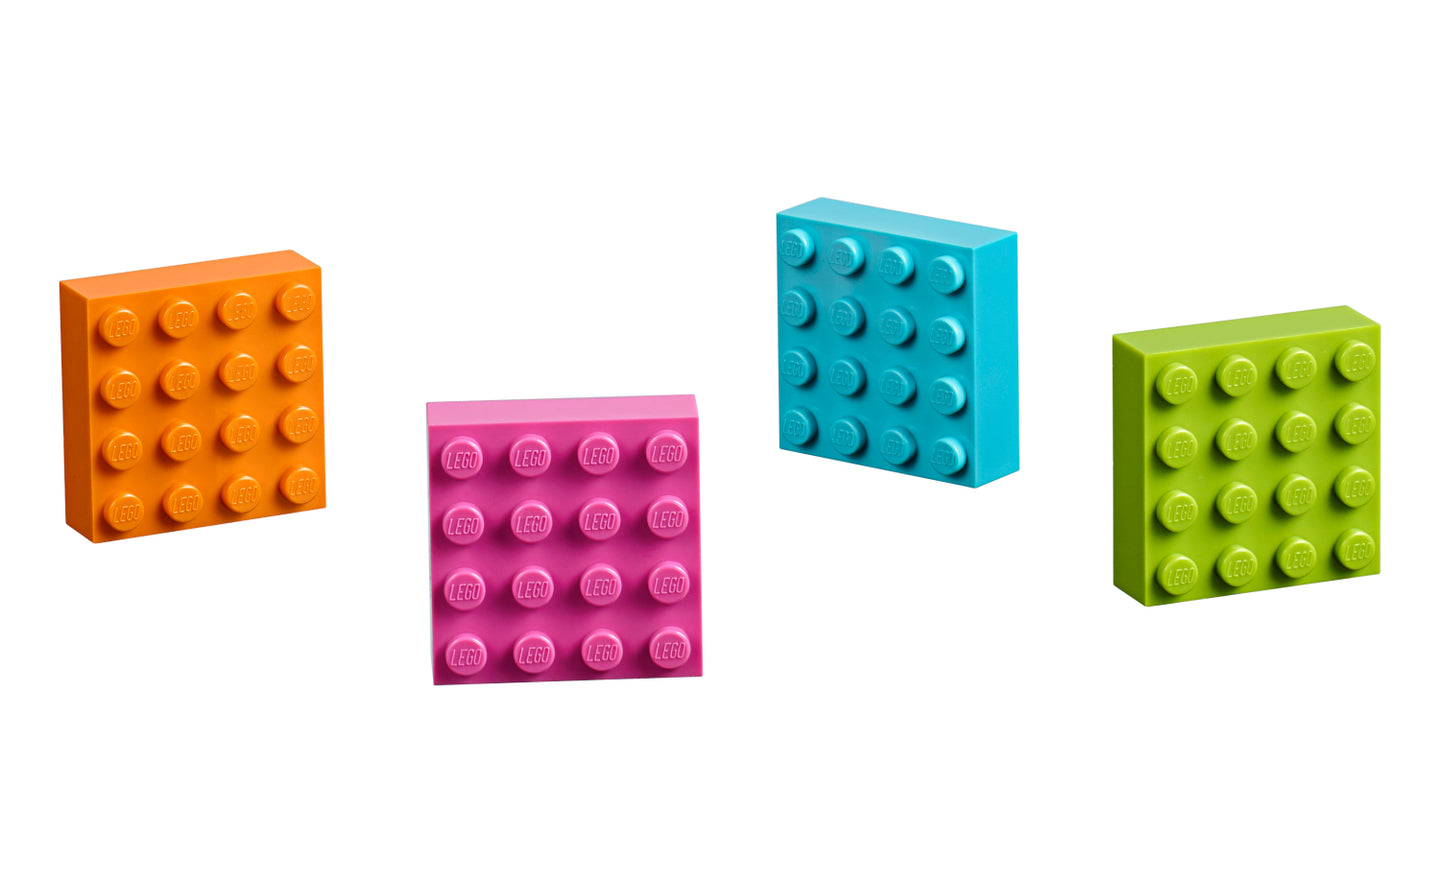 853900 | LEGO® 4x4 Brick Magnets